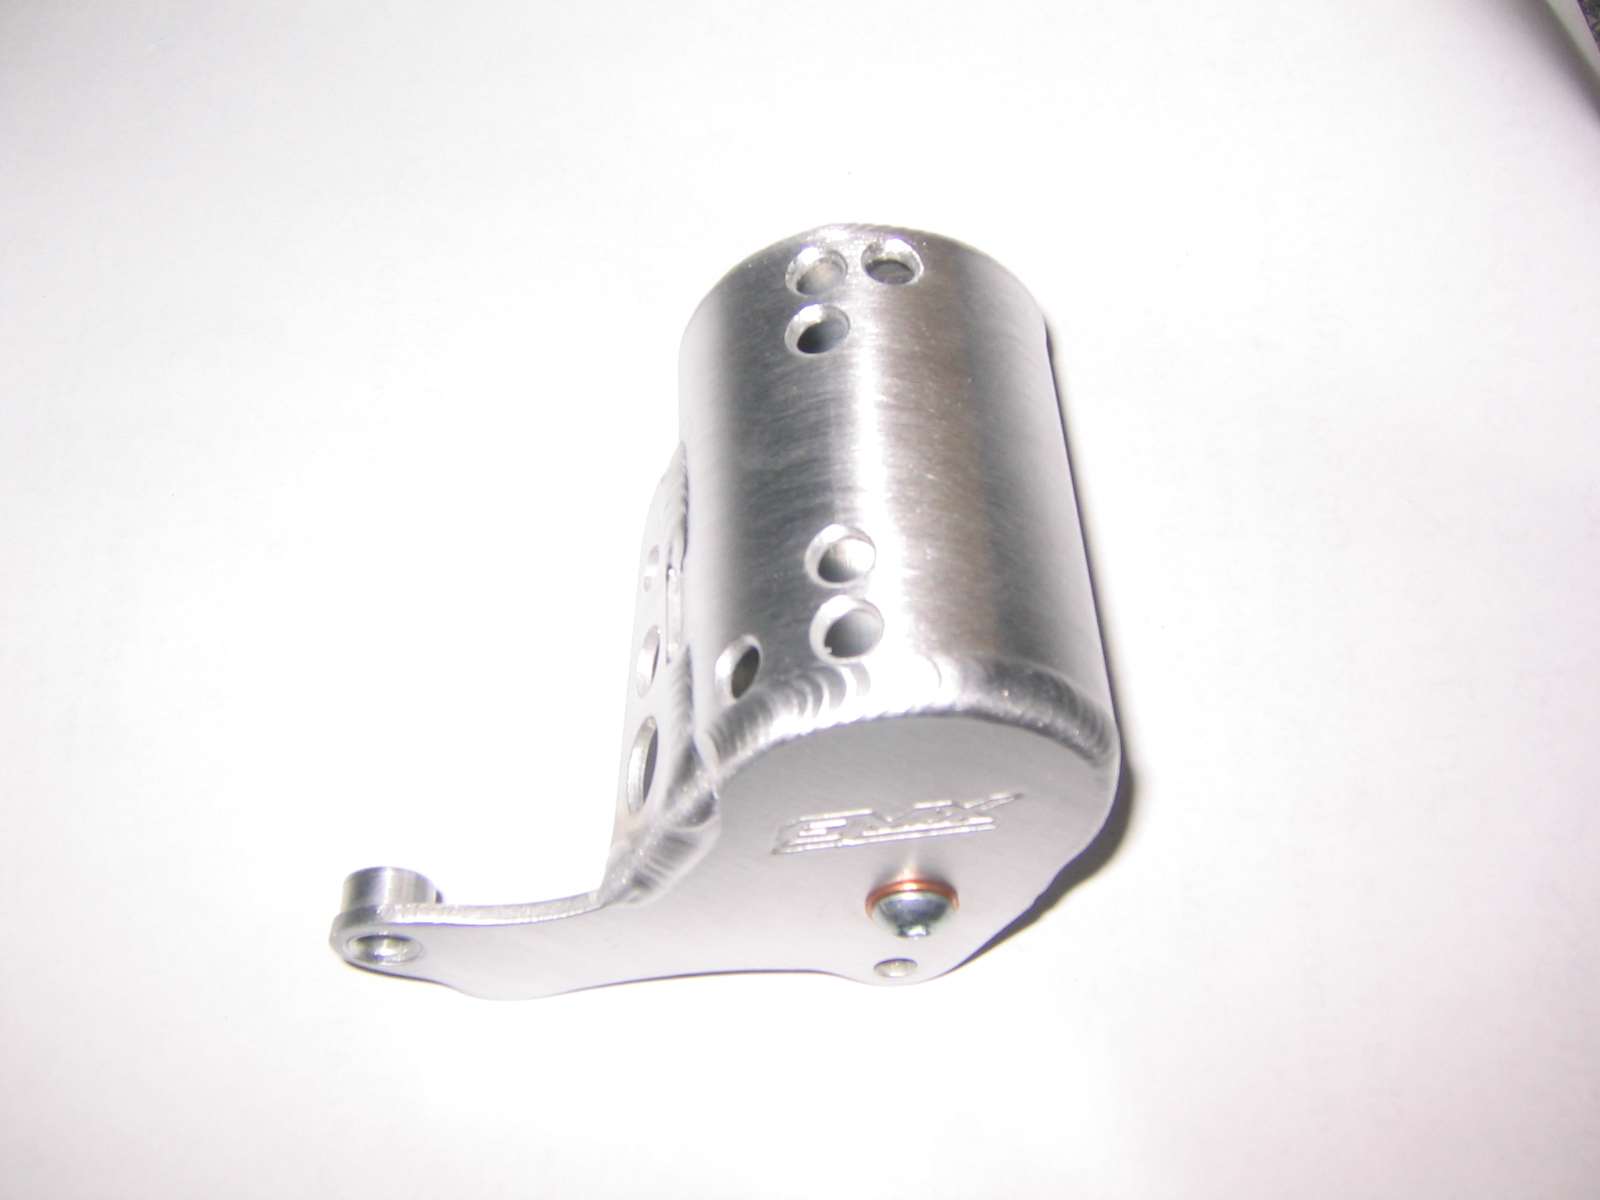 Fuel Catch Tank (CRF 250)